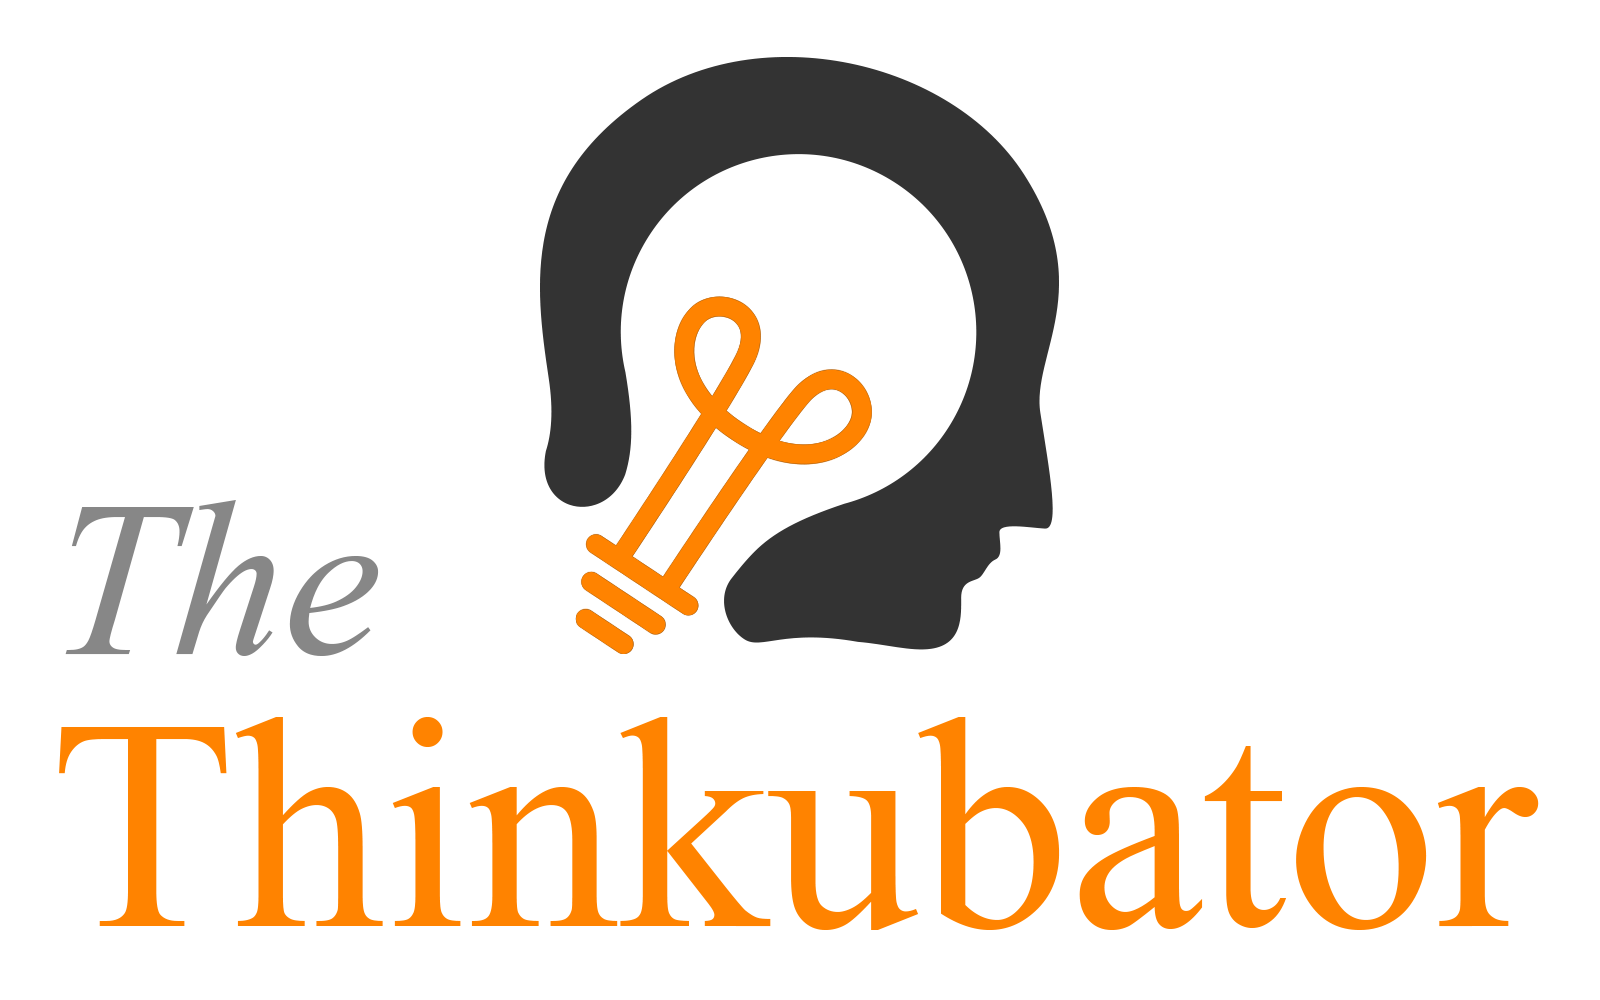 The Thinkubator Announces the Launch of Fall 2020 Programs and Think Tank Despite the Impact of COVID-19 and the Uncertainty of School